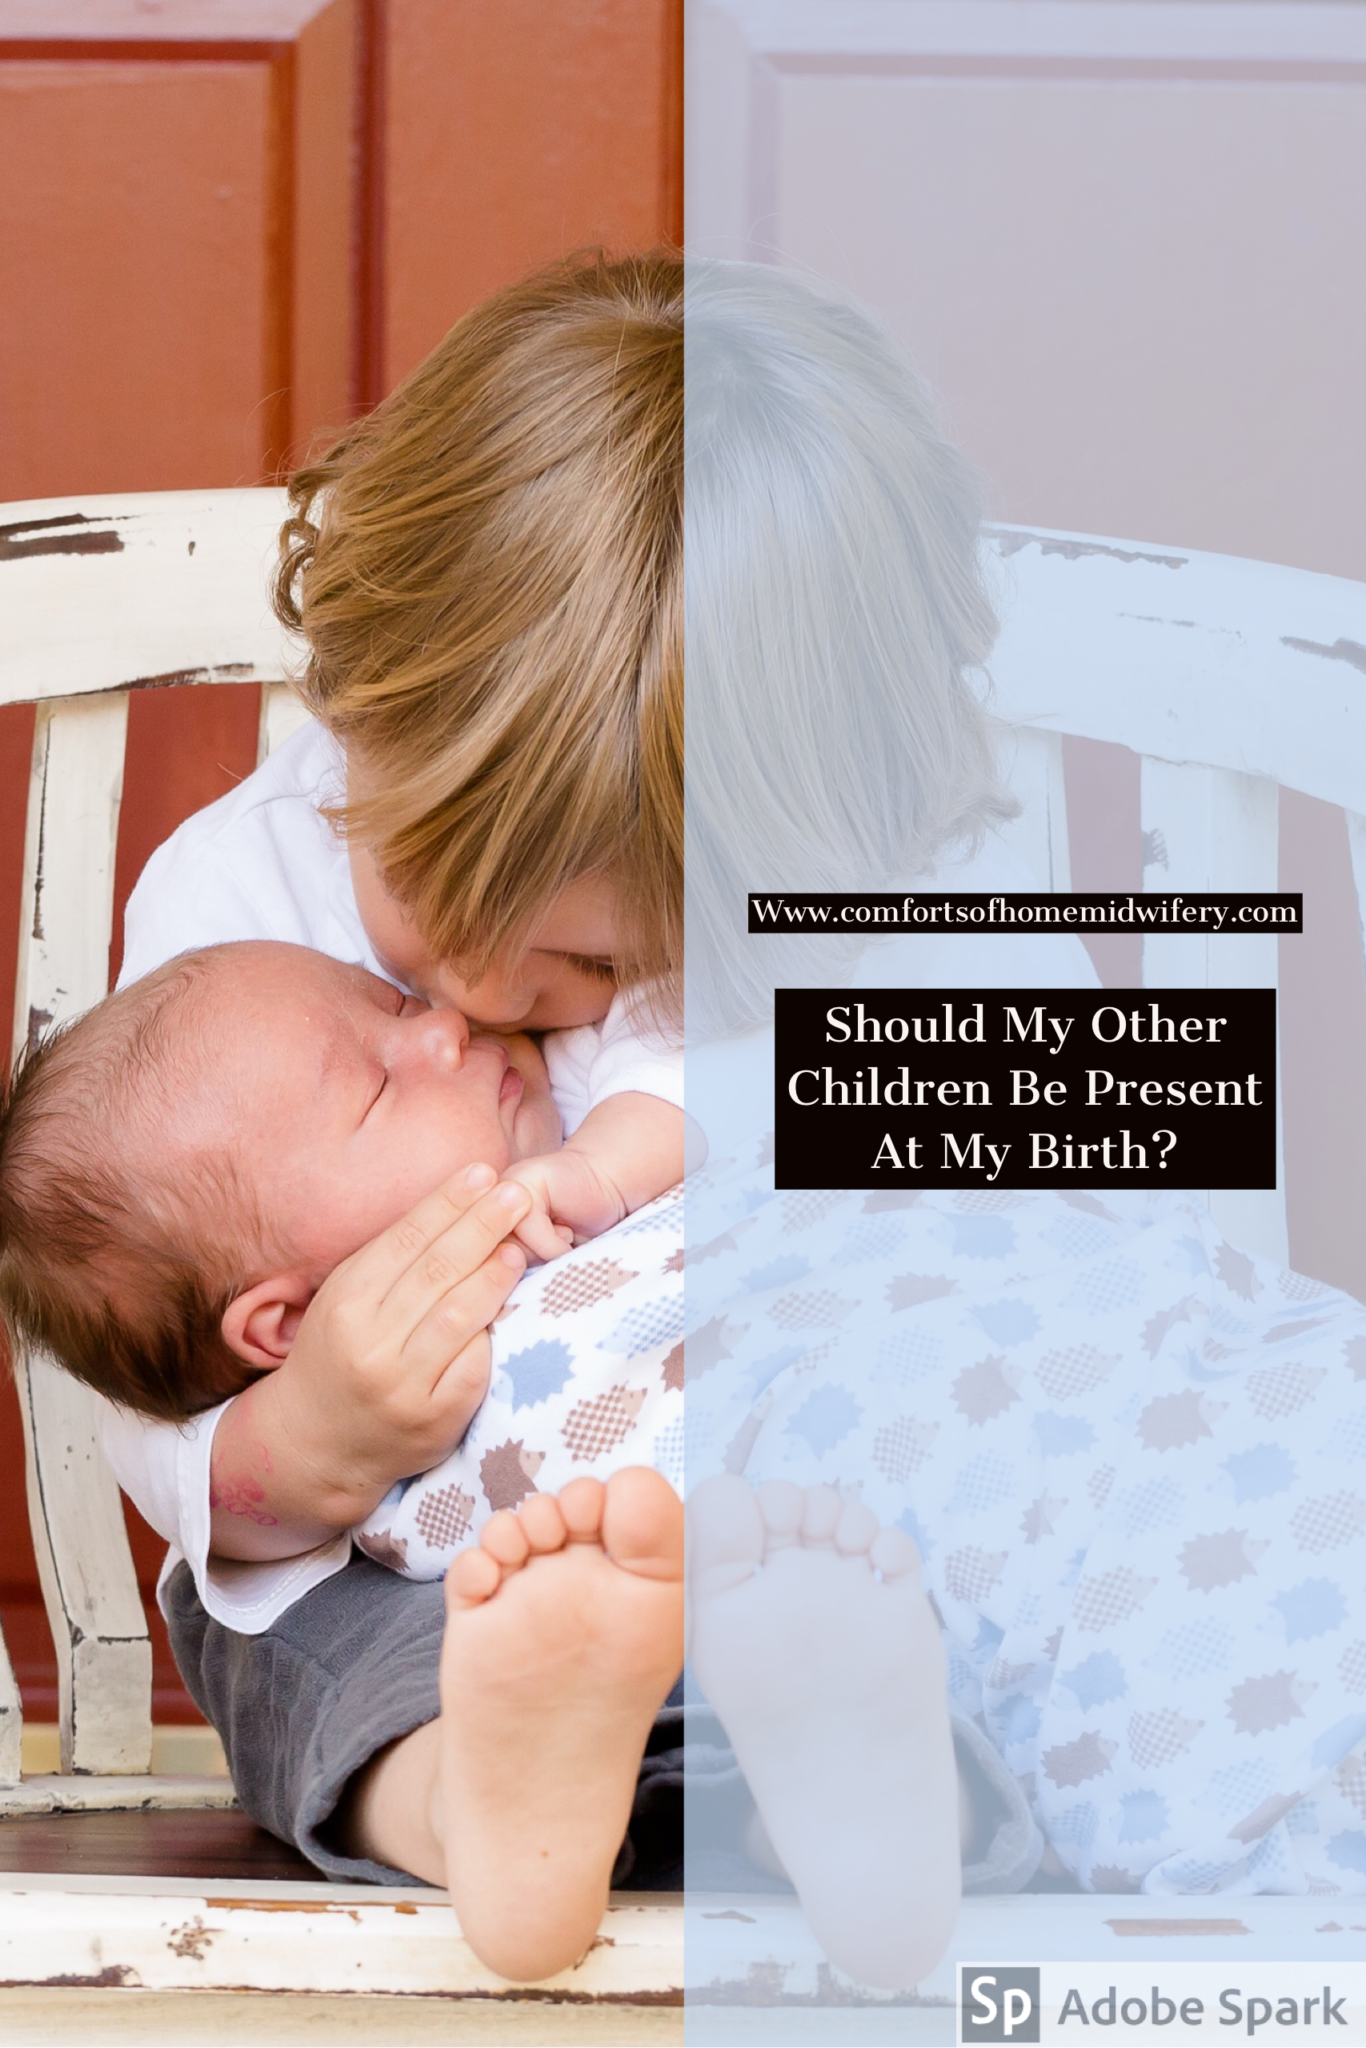 Should My Other Children Be Present at My Birth?